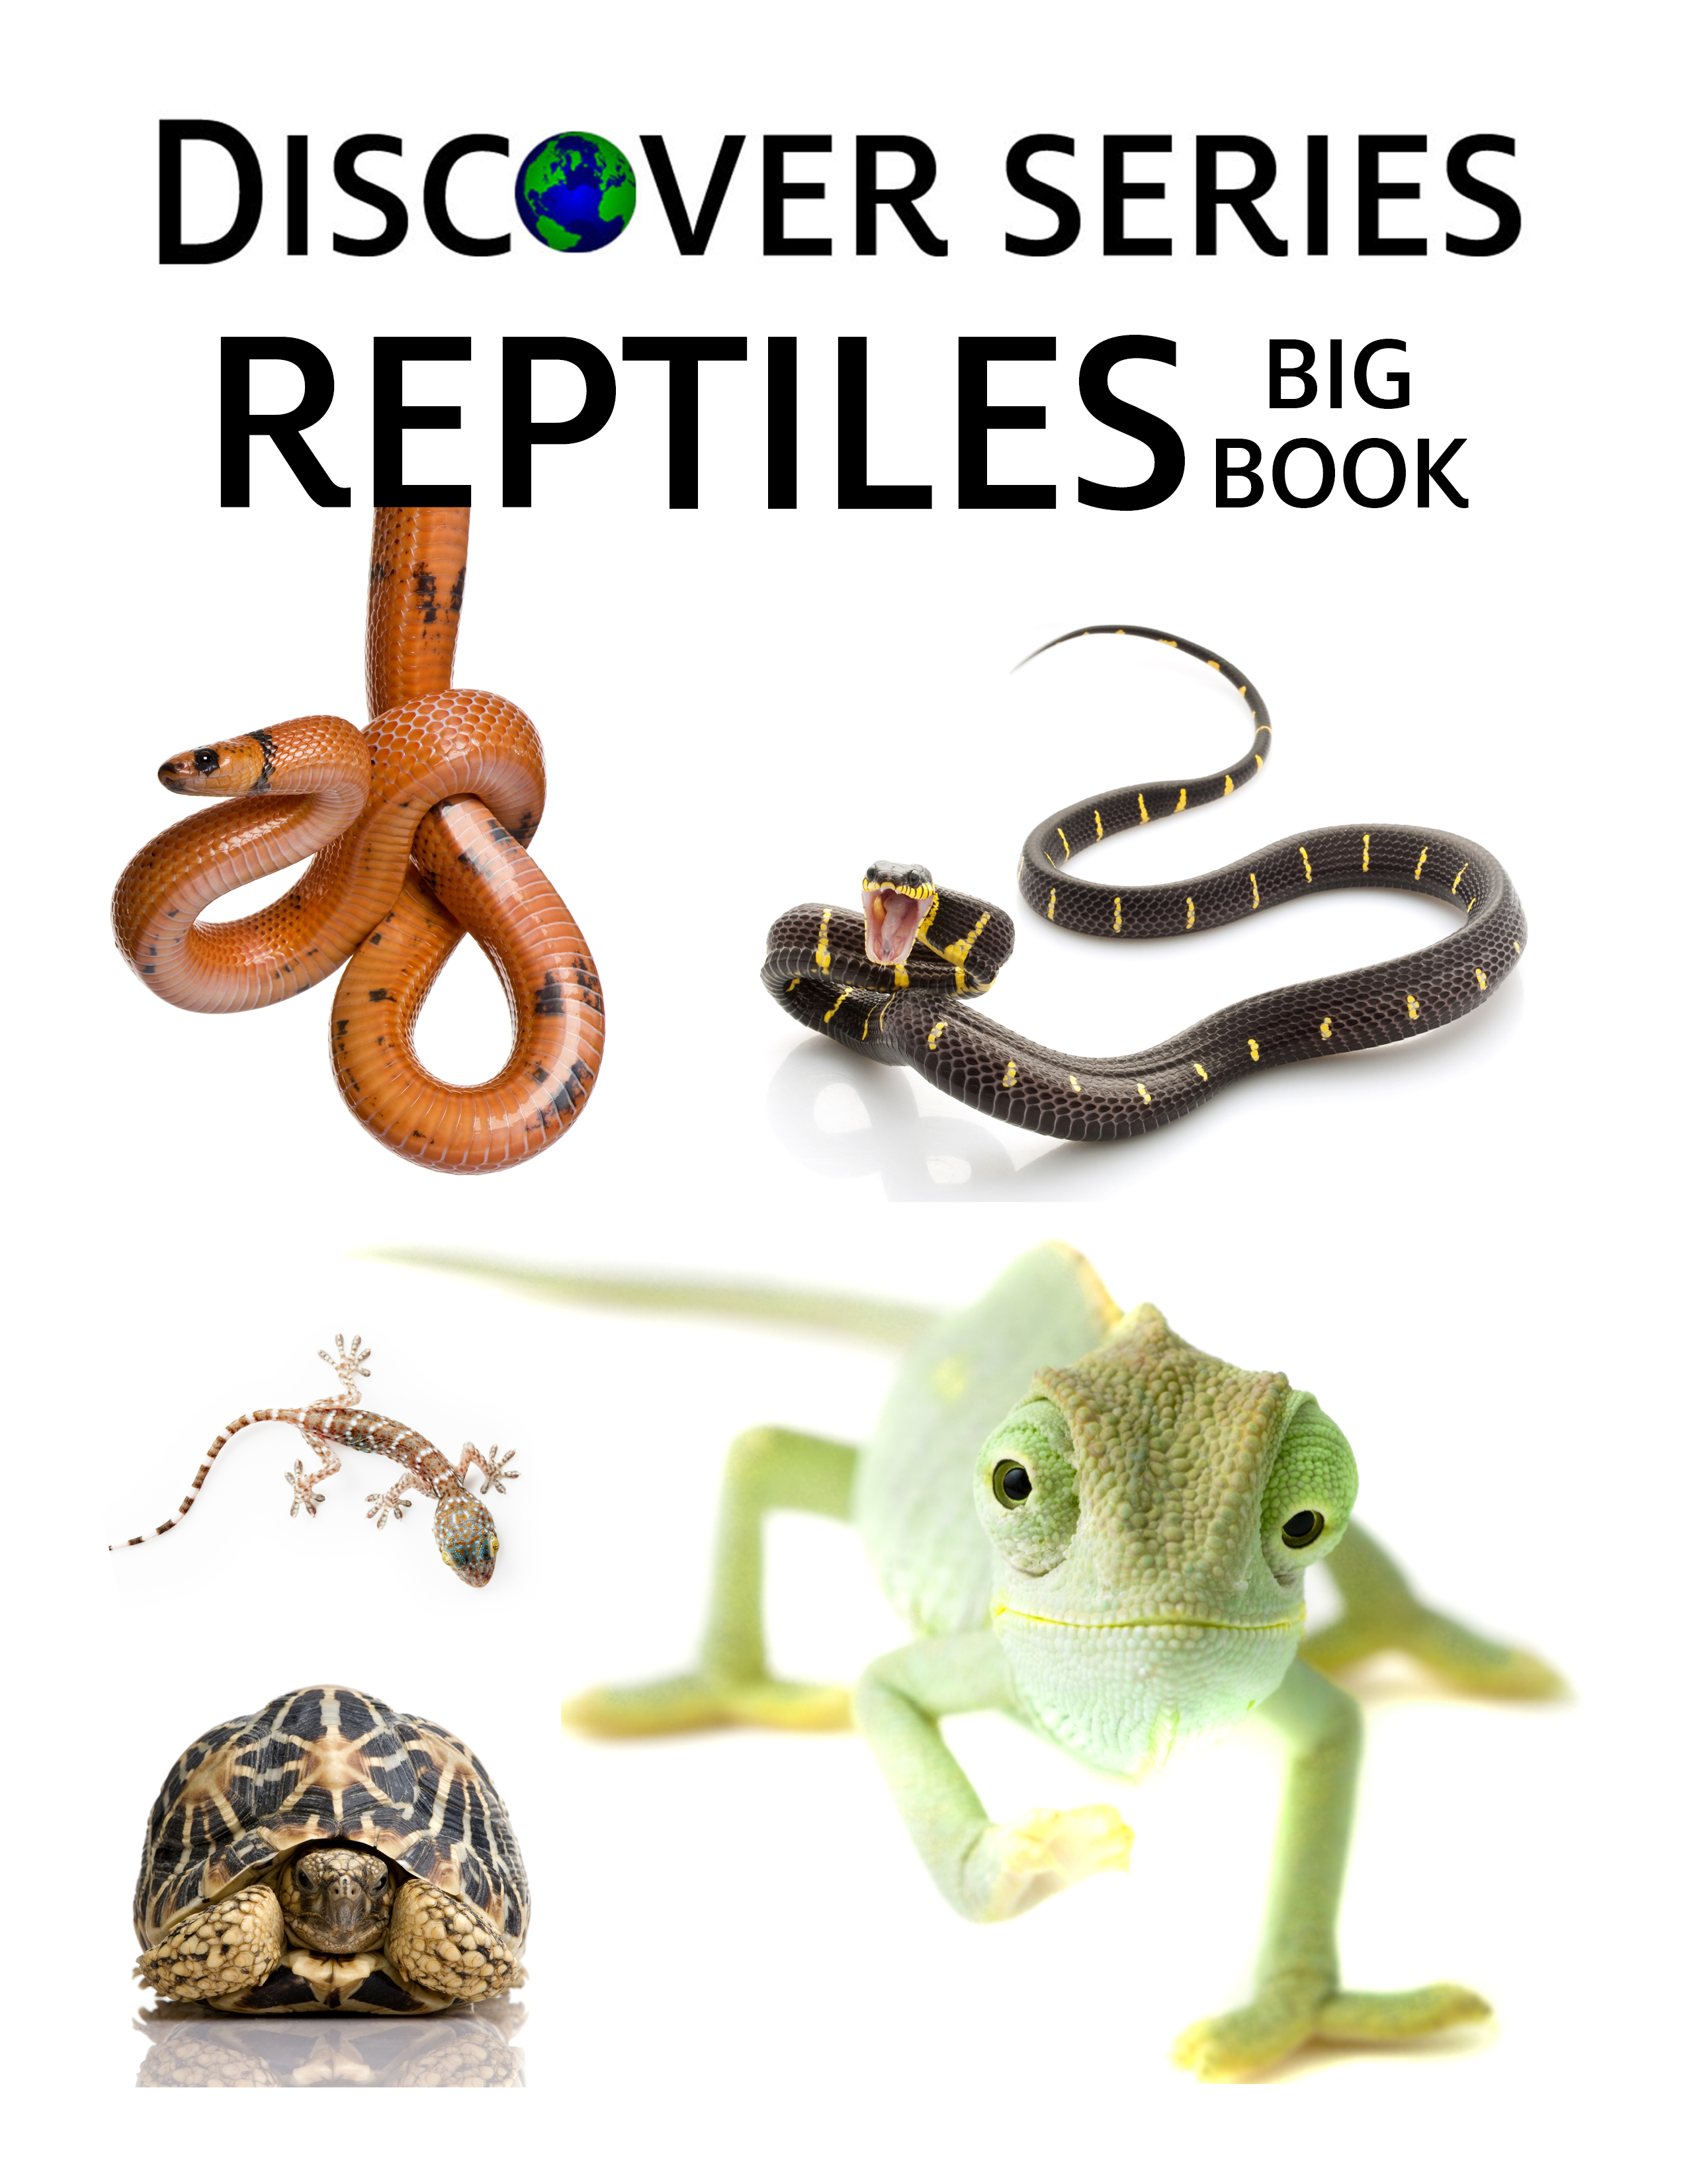 Reptiles Big Book